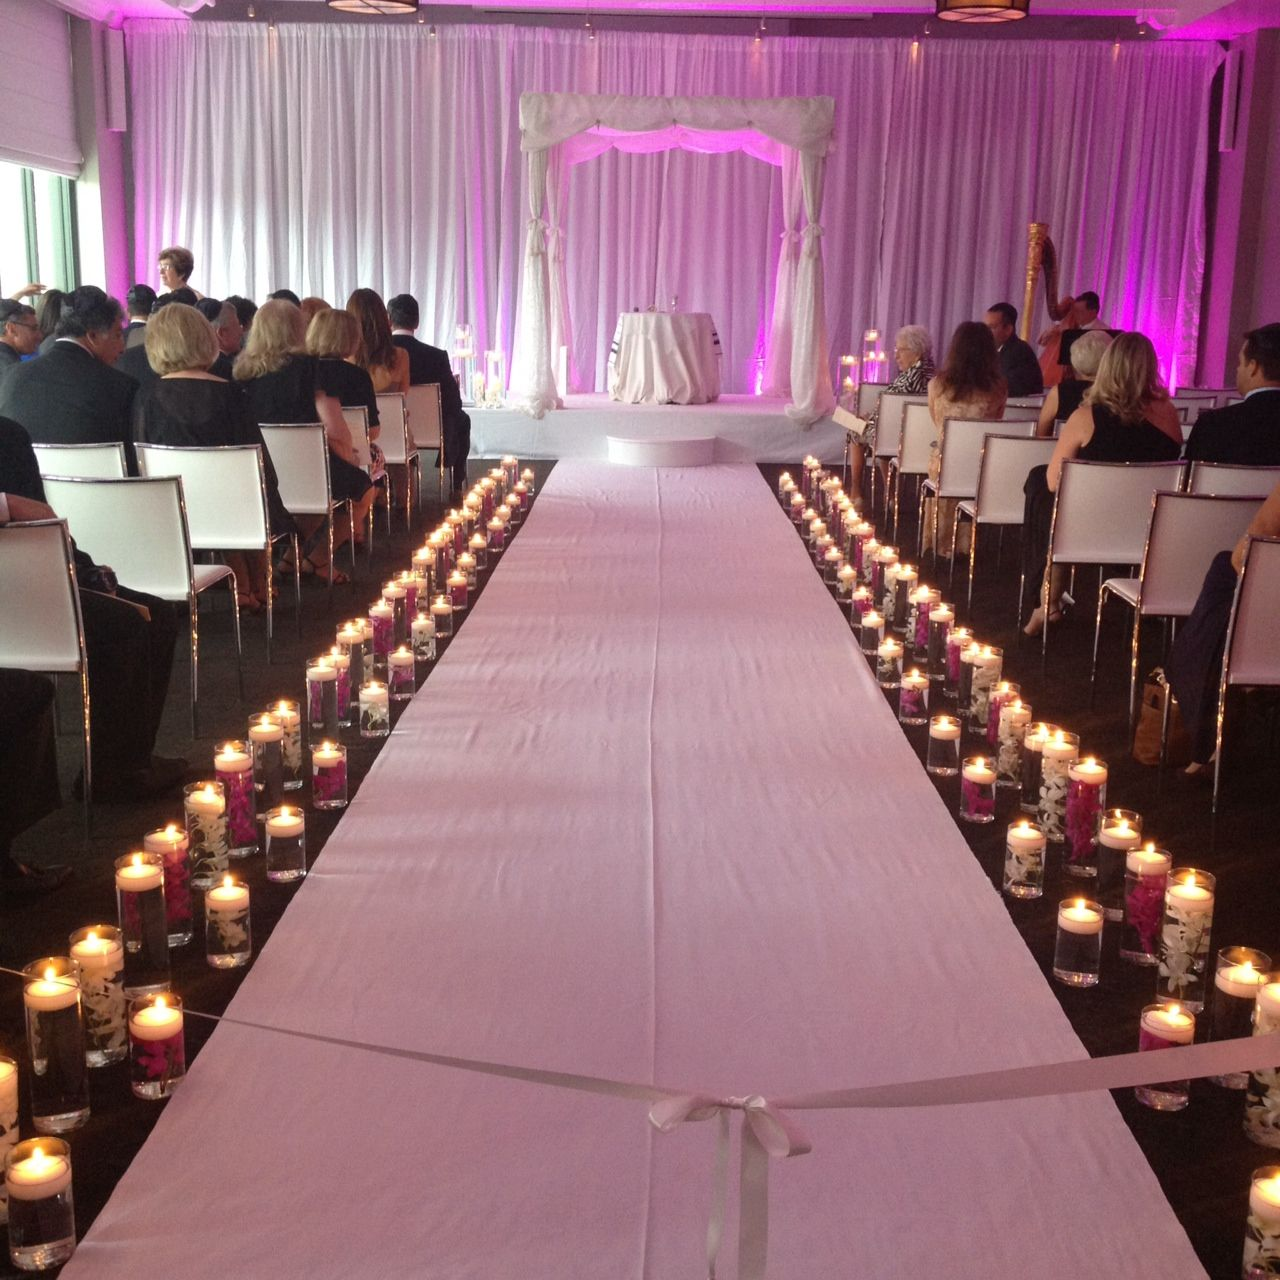 Wedding ceremony decorations 29th 2012 in ceremony wedding ceremony decorations 29th 2012 in ceremony details junglespirit Image collections